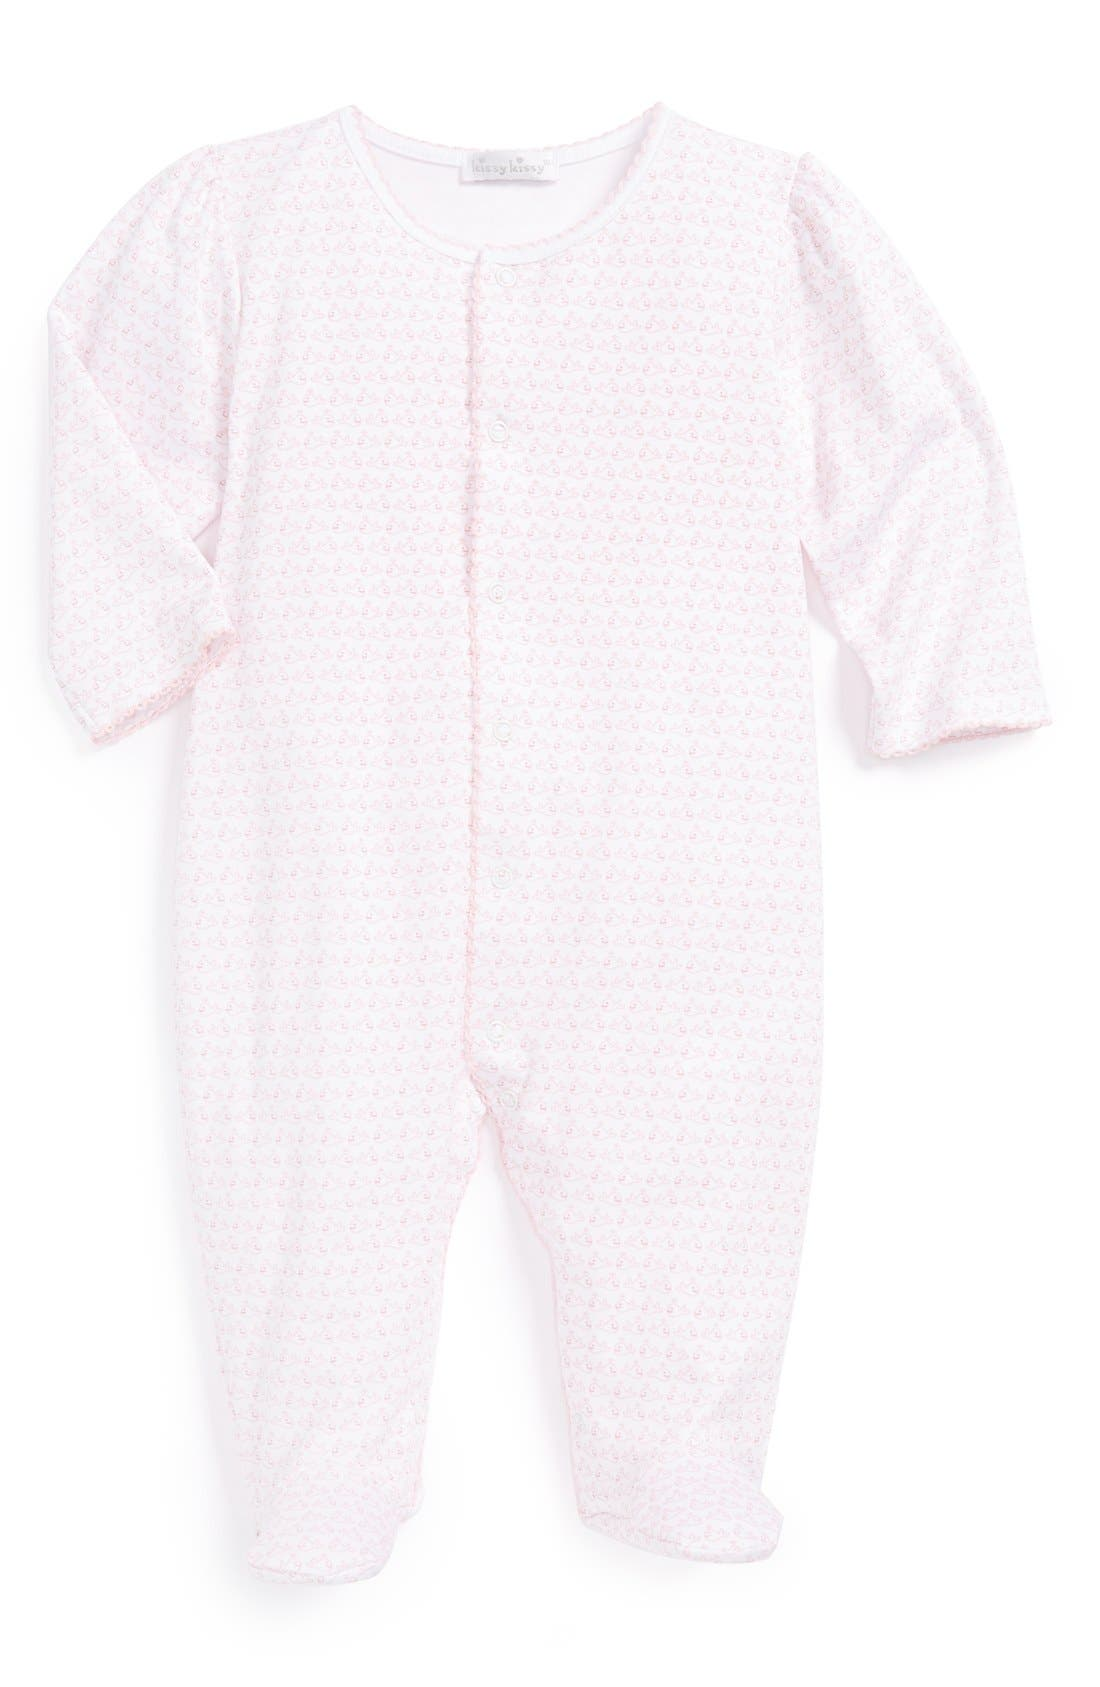 Alternate Image 1 Selected - Kissy Kissy 'Wandering Whales' Pima Cotton Footie (Baby Girls)